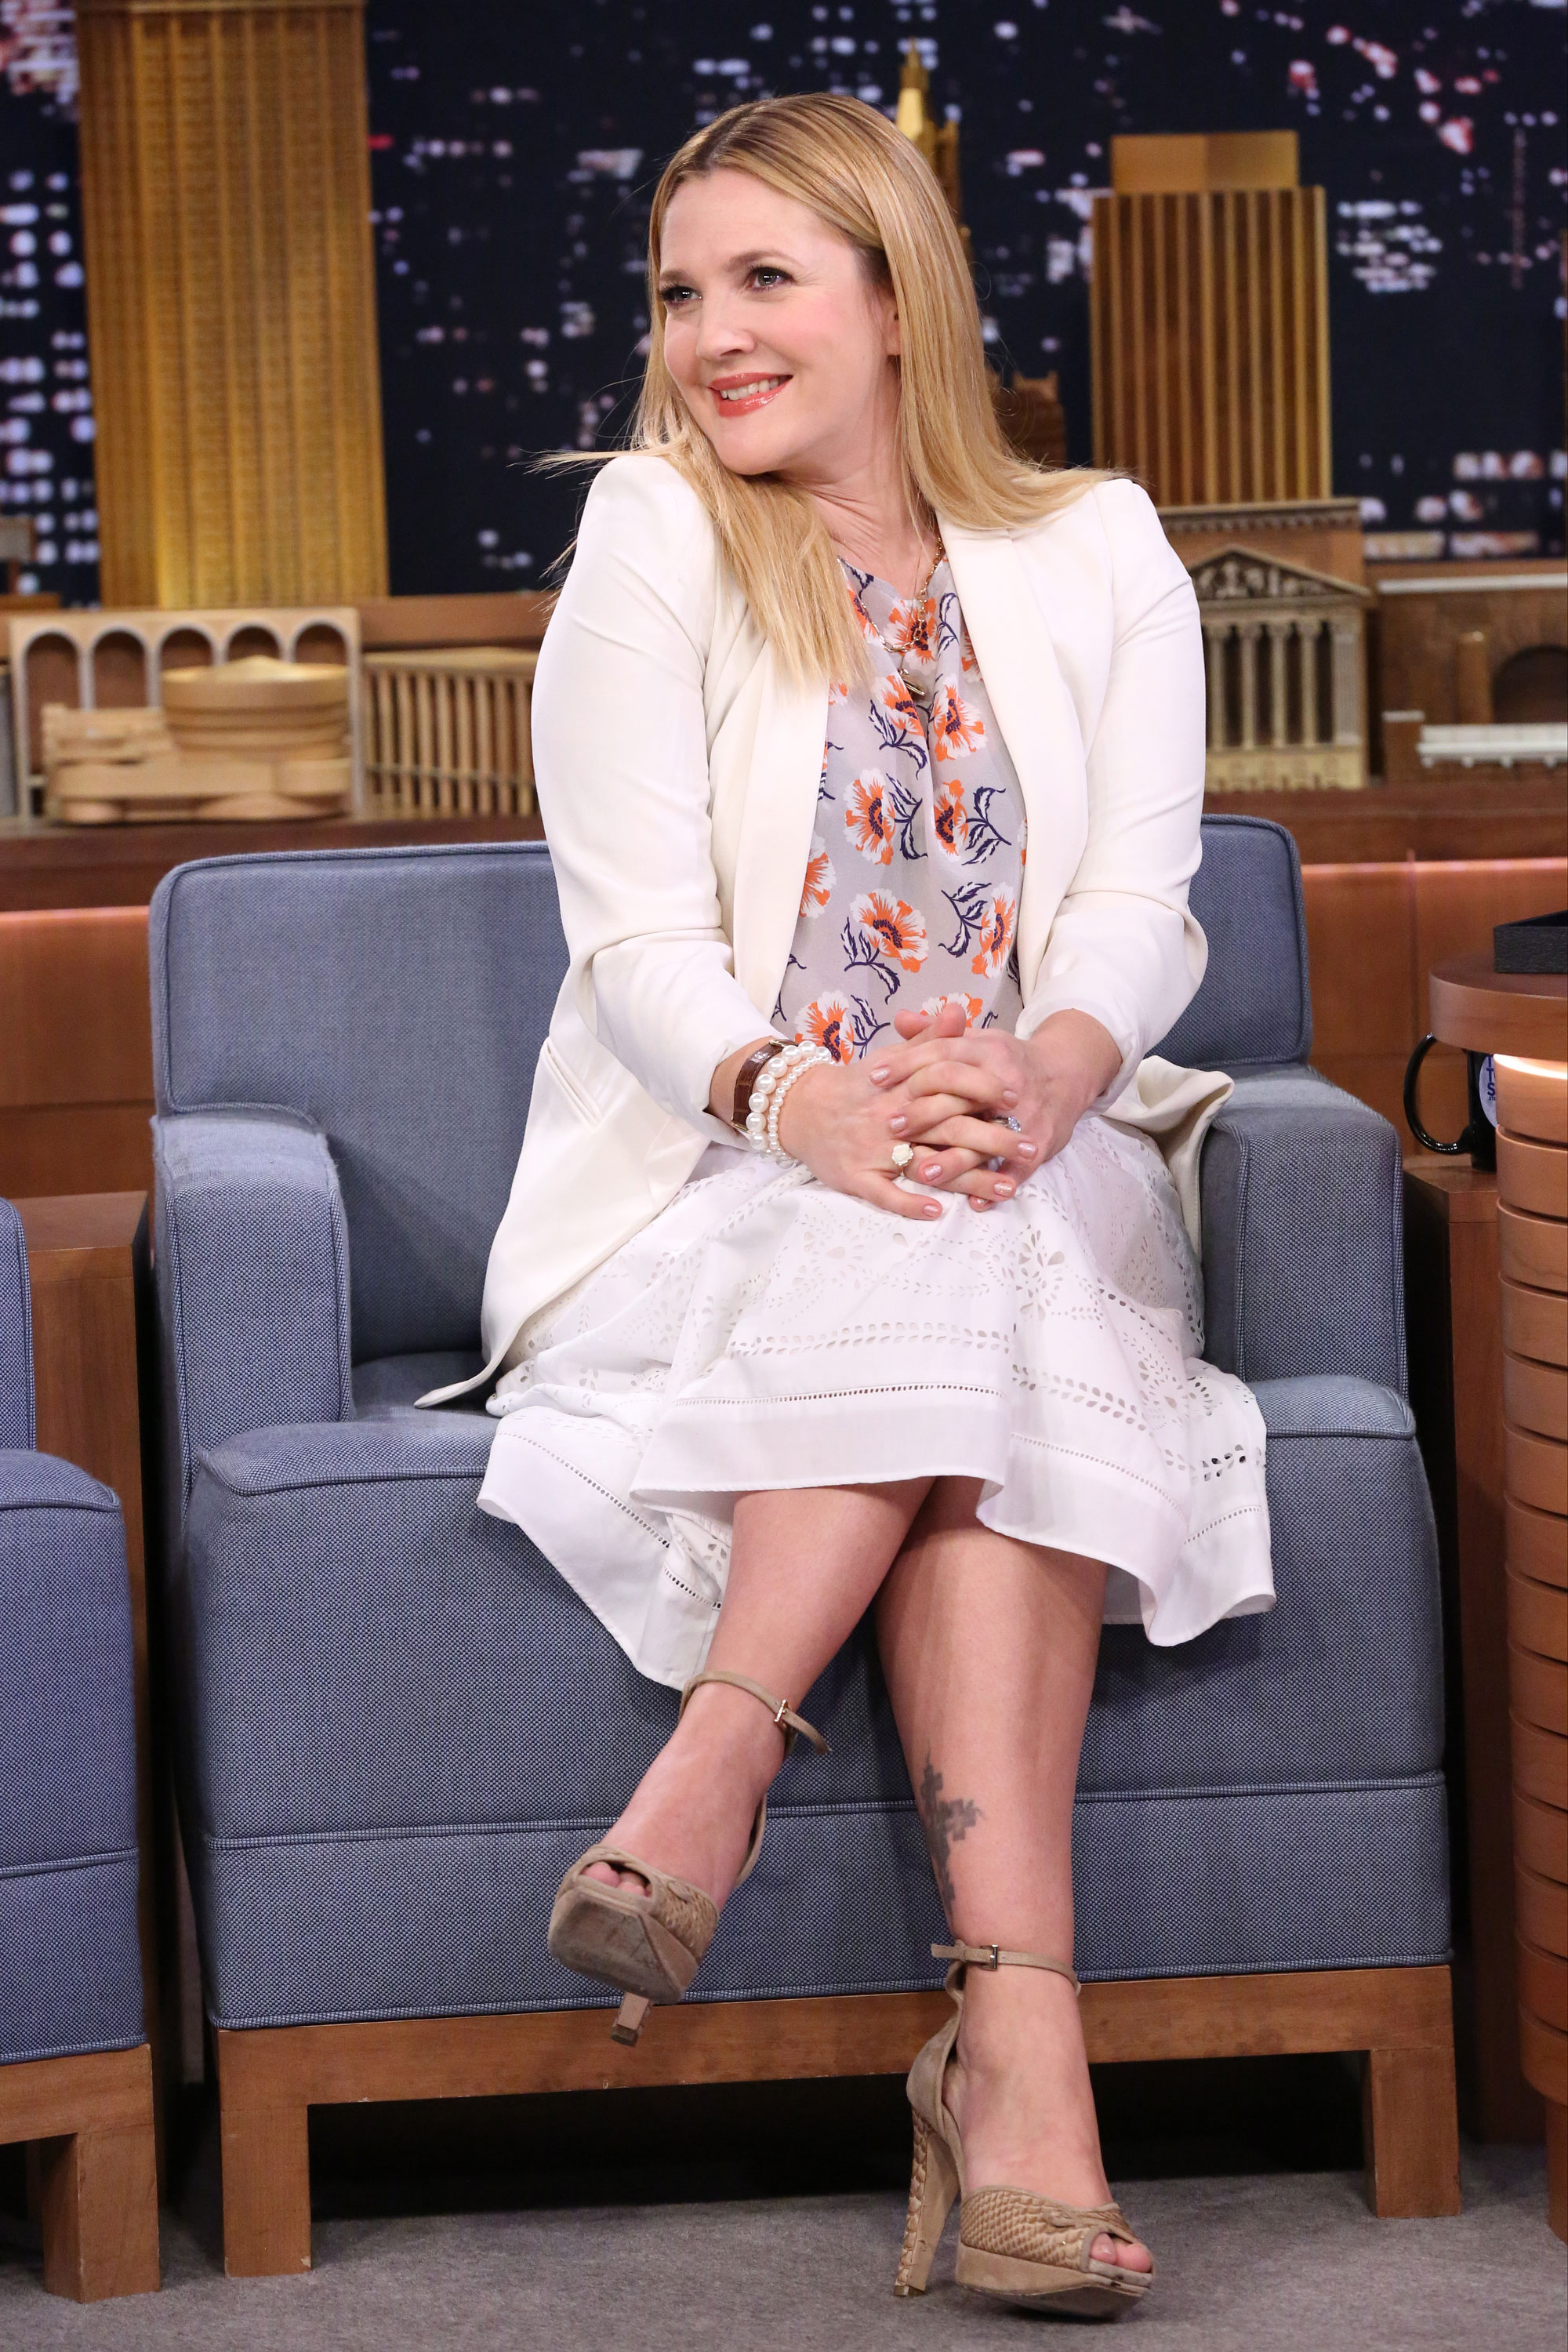 "Drew Barrymore's Body Through the Years - The Flower Beauty creator, who visited The Tonight Show Starring Jimmy Fallon seven months after welcoming her second daughter, Frankie, considers herself a realistic optimist. ""I like fun and empowerment and things that have some broader message of positivity,"" she has said."